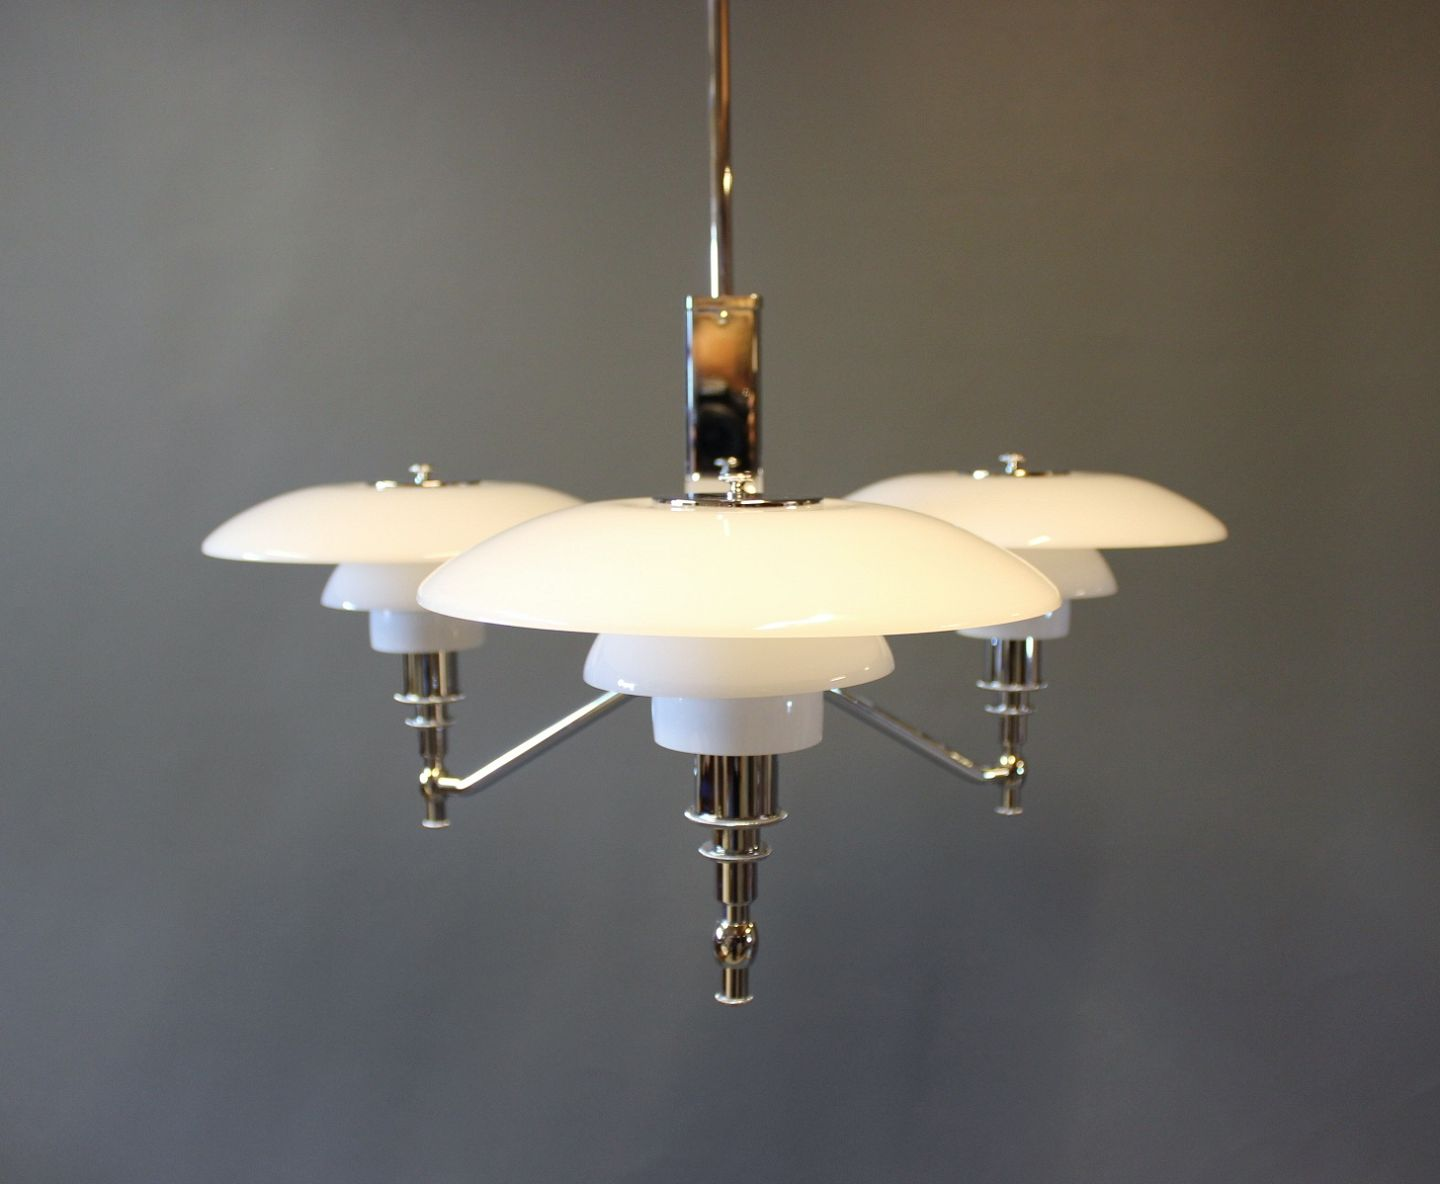 Poul Henningsen Lampe Worldantique Ph 3 2 Academy Designed By Poul Henningsen And